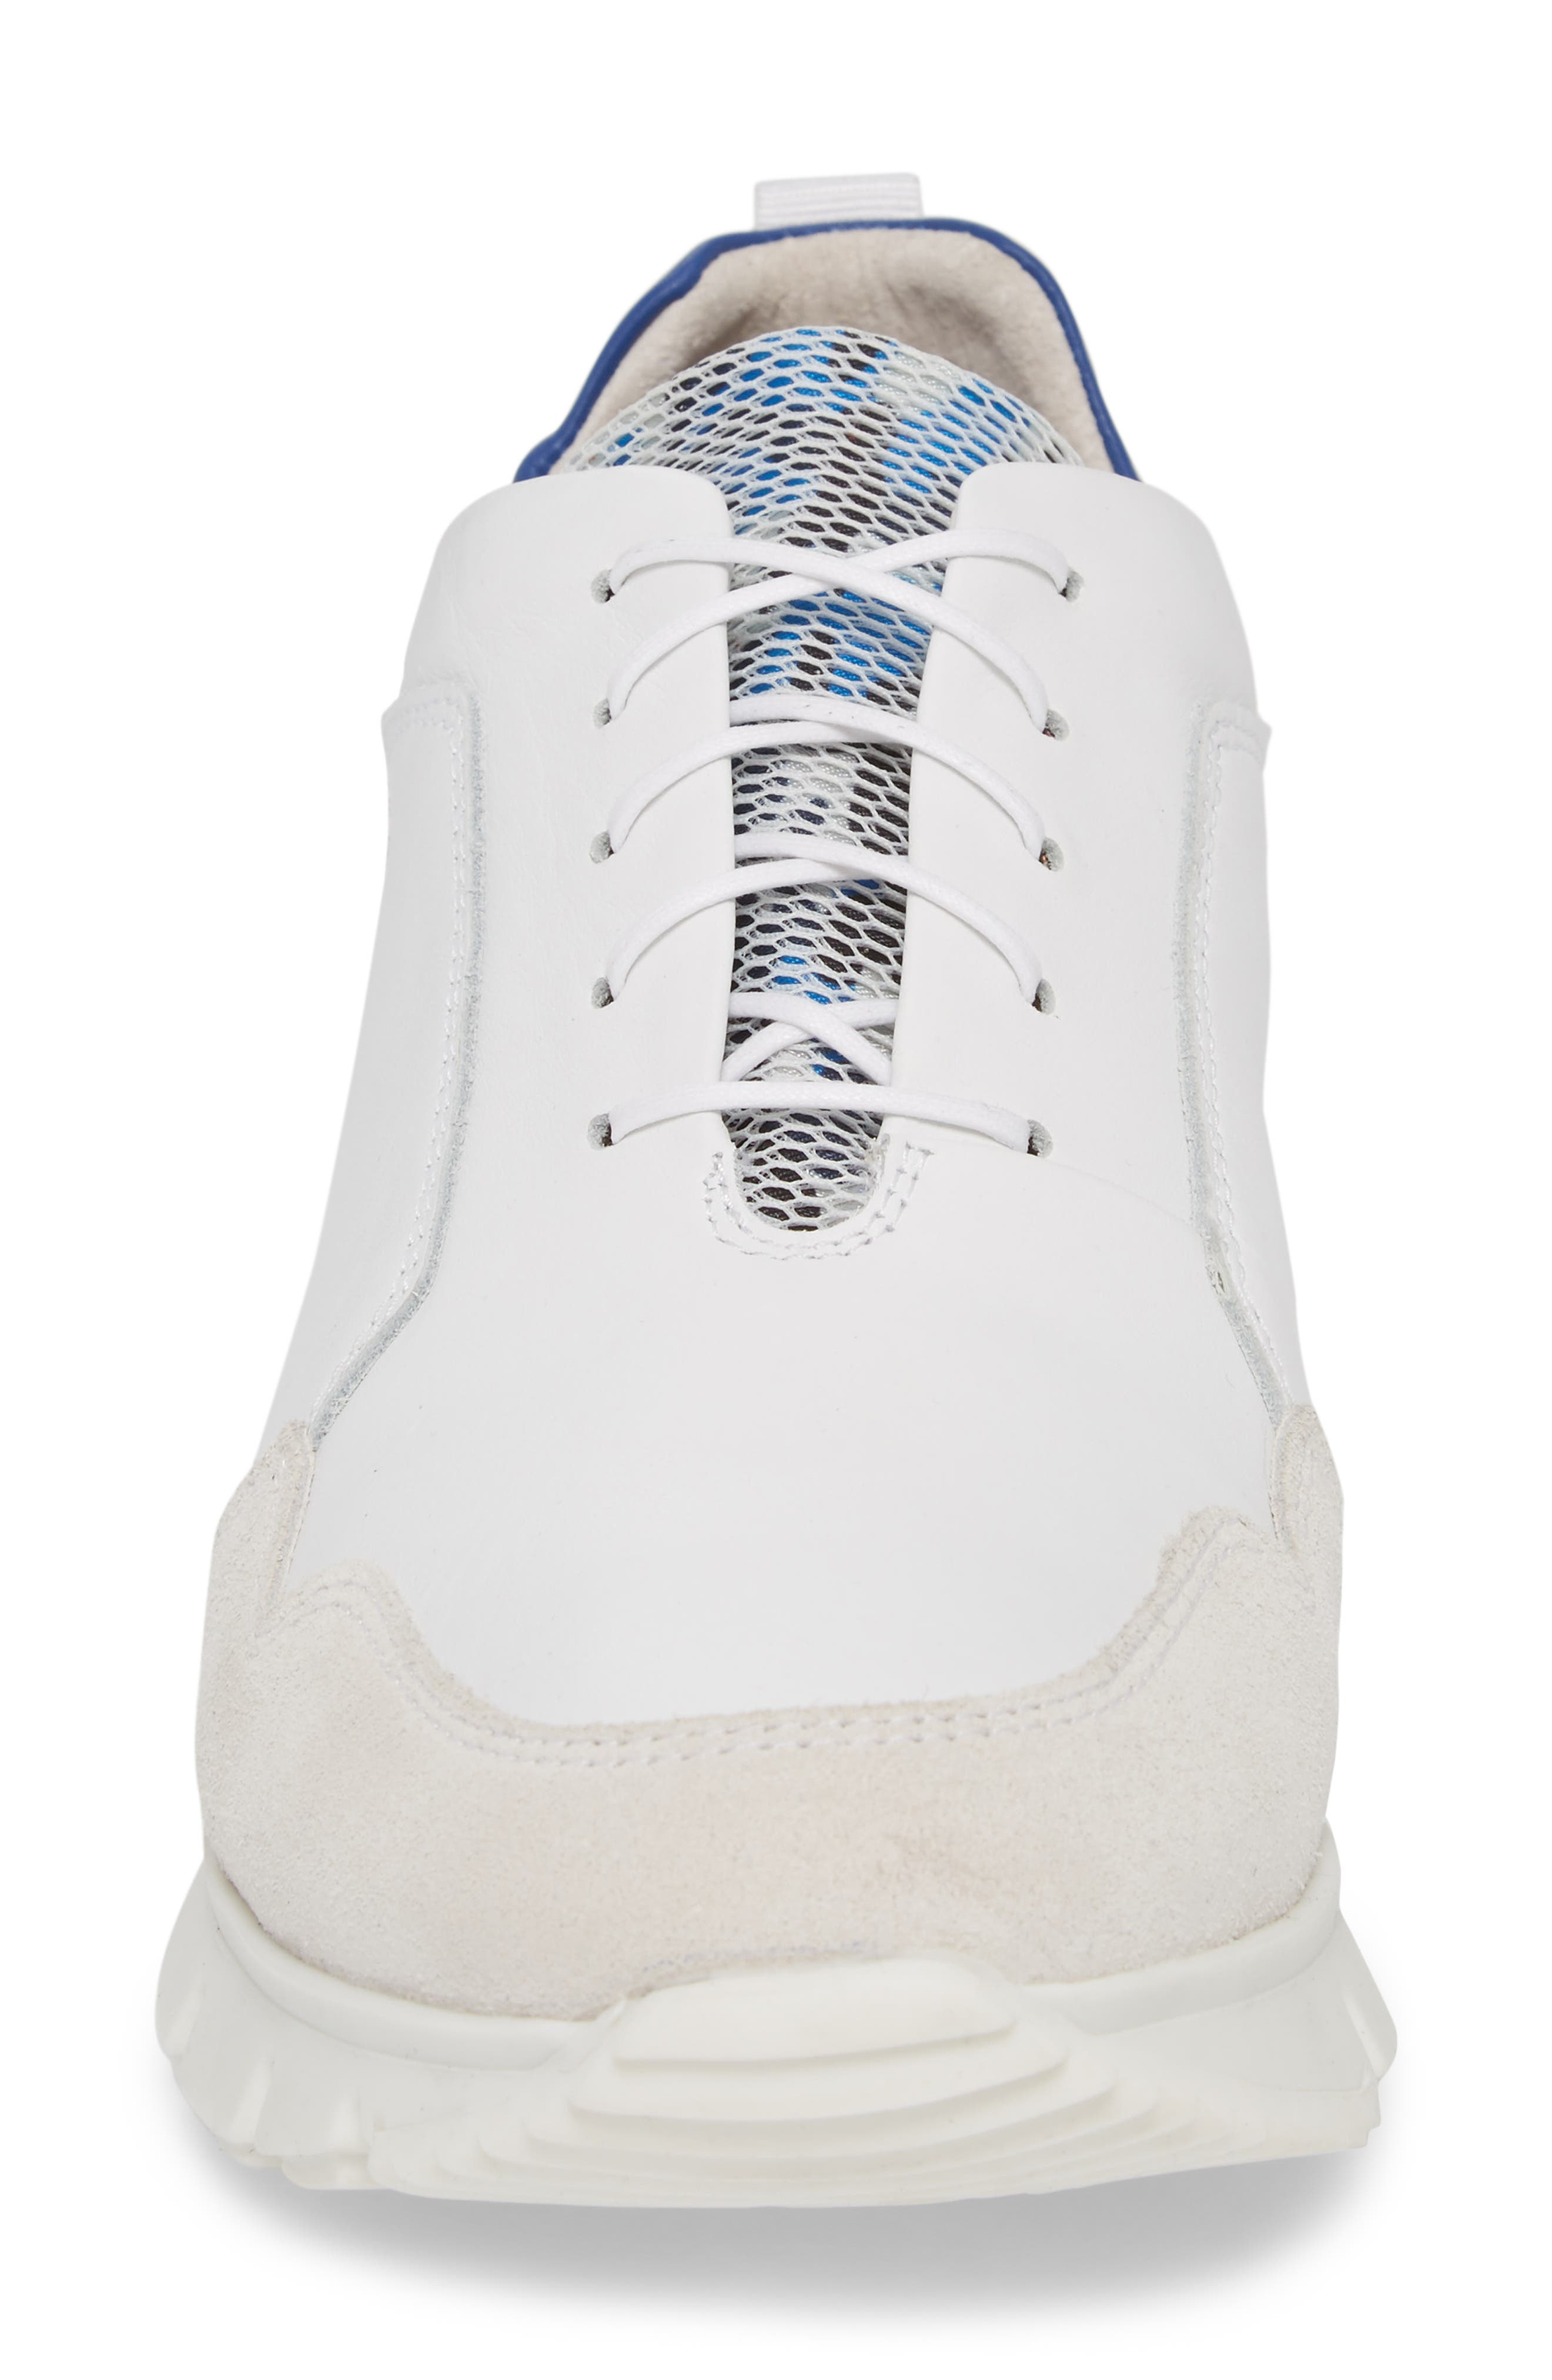 Sild Low Top Sneaker,                             Alternate thumbnail 4, color,                             WHITE SUEDE/ LEATHER